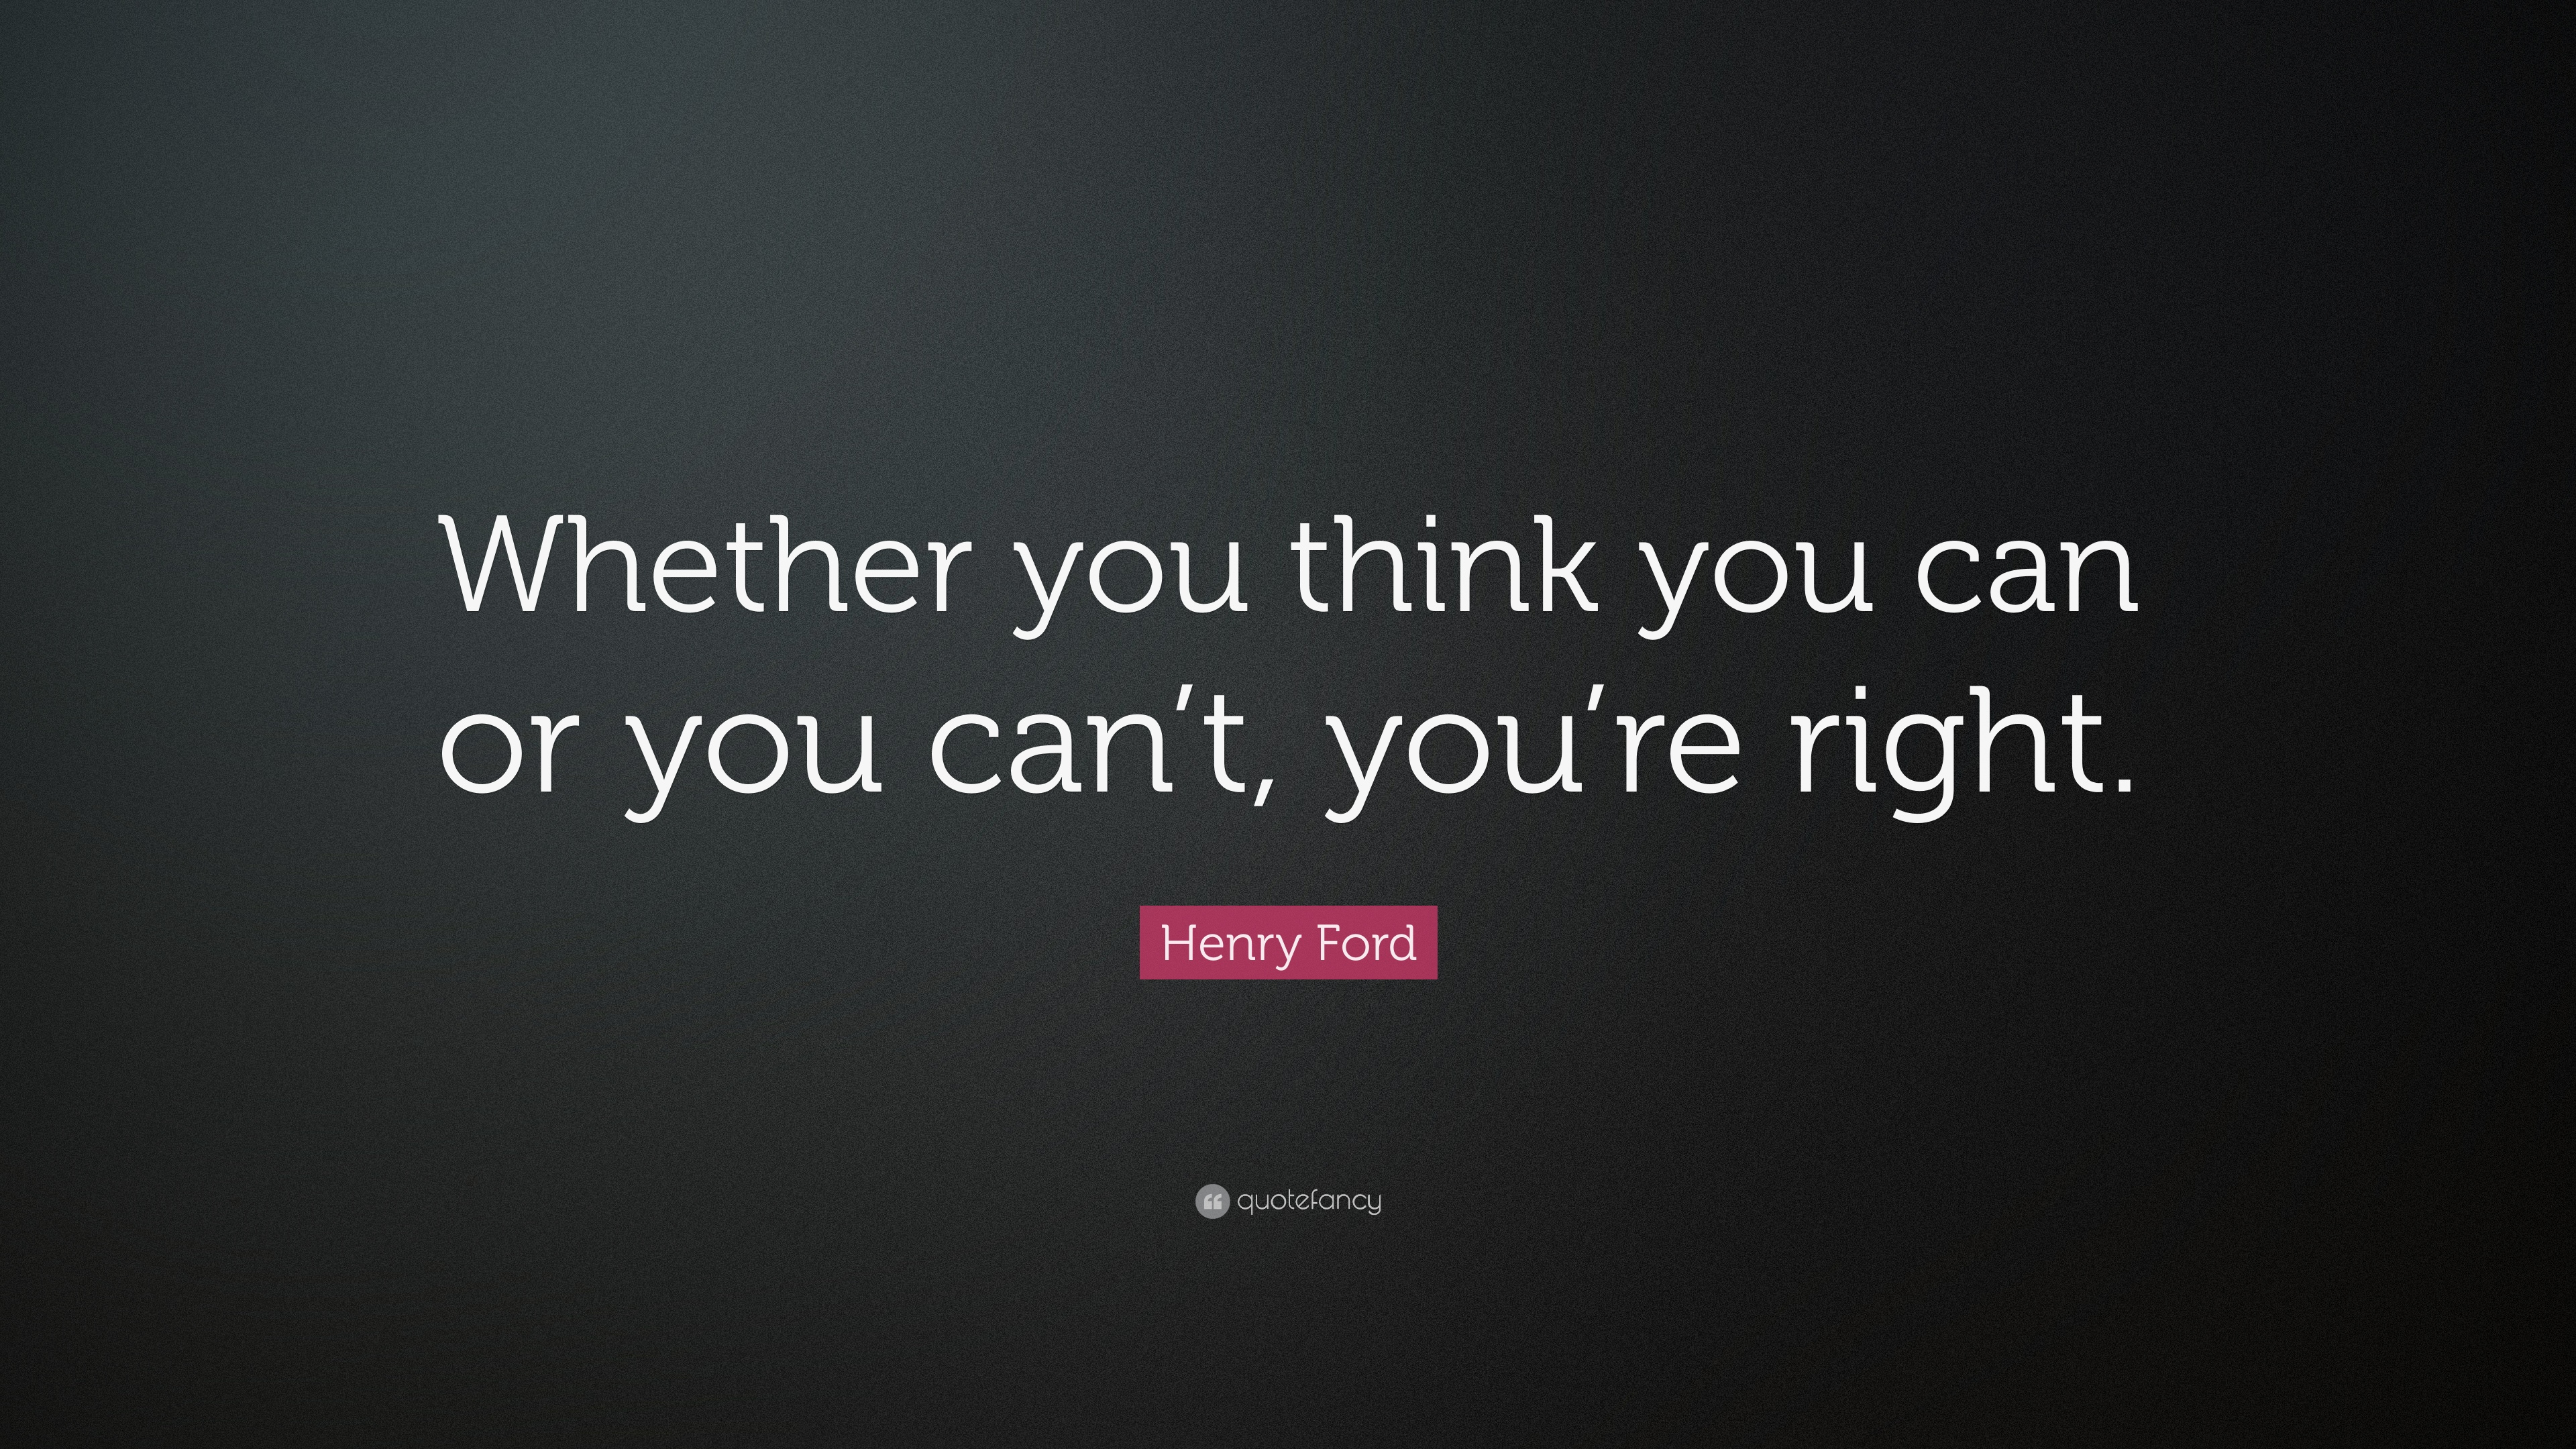 henry ford quote whether you think you can or you can t you re